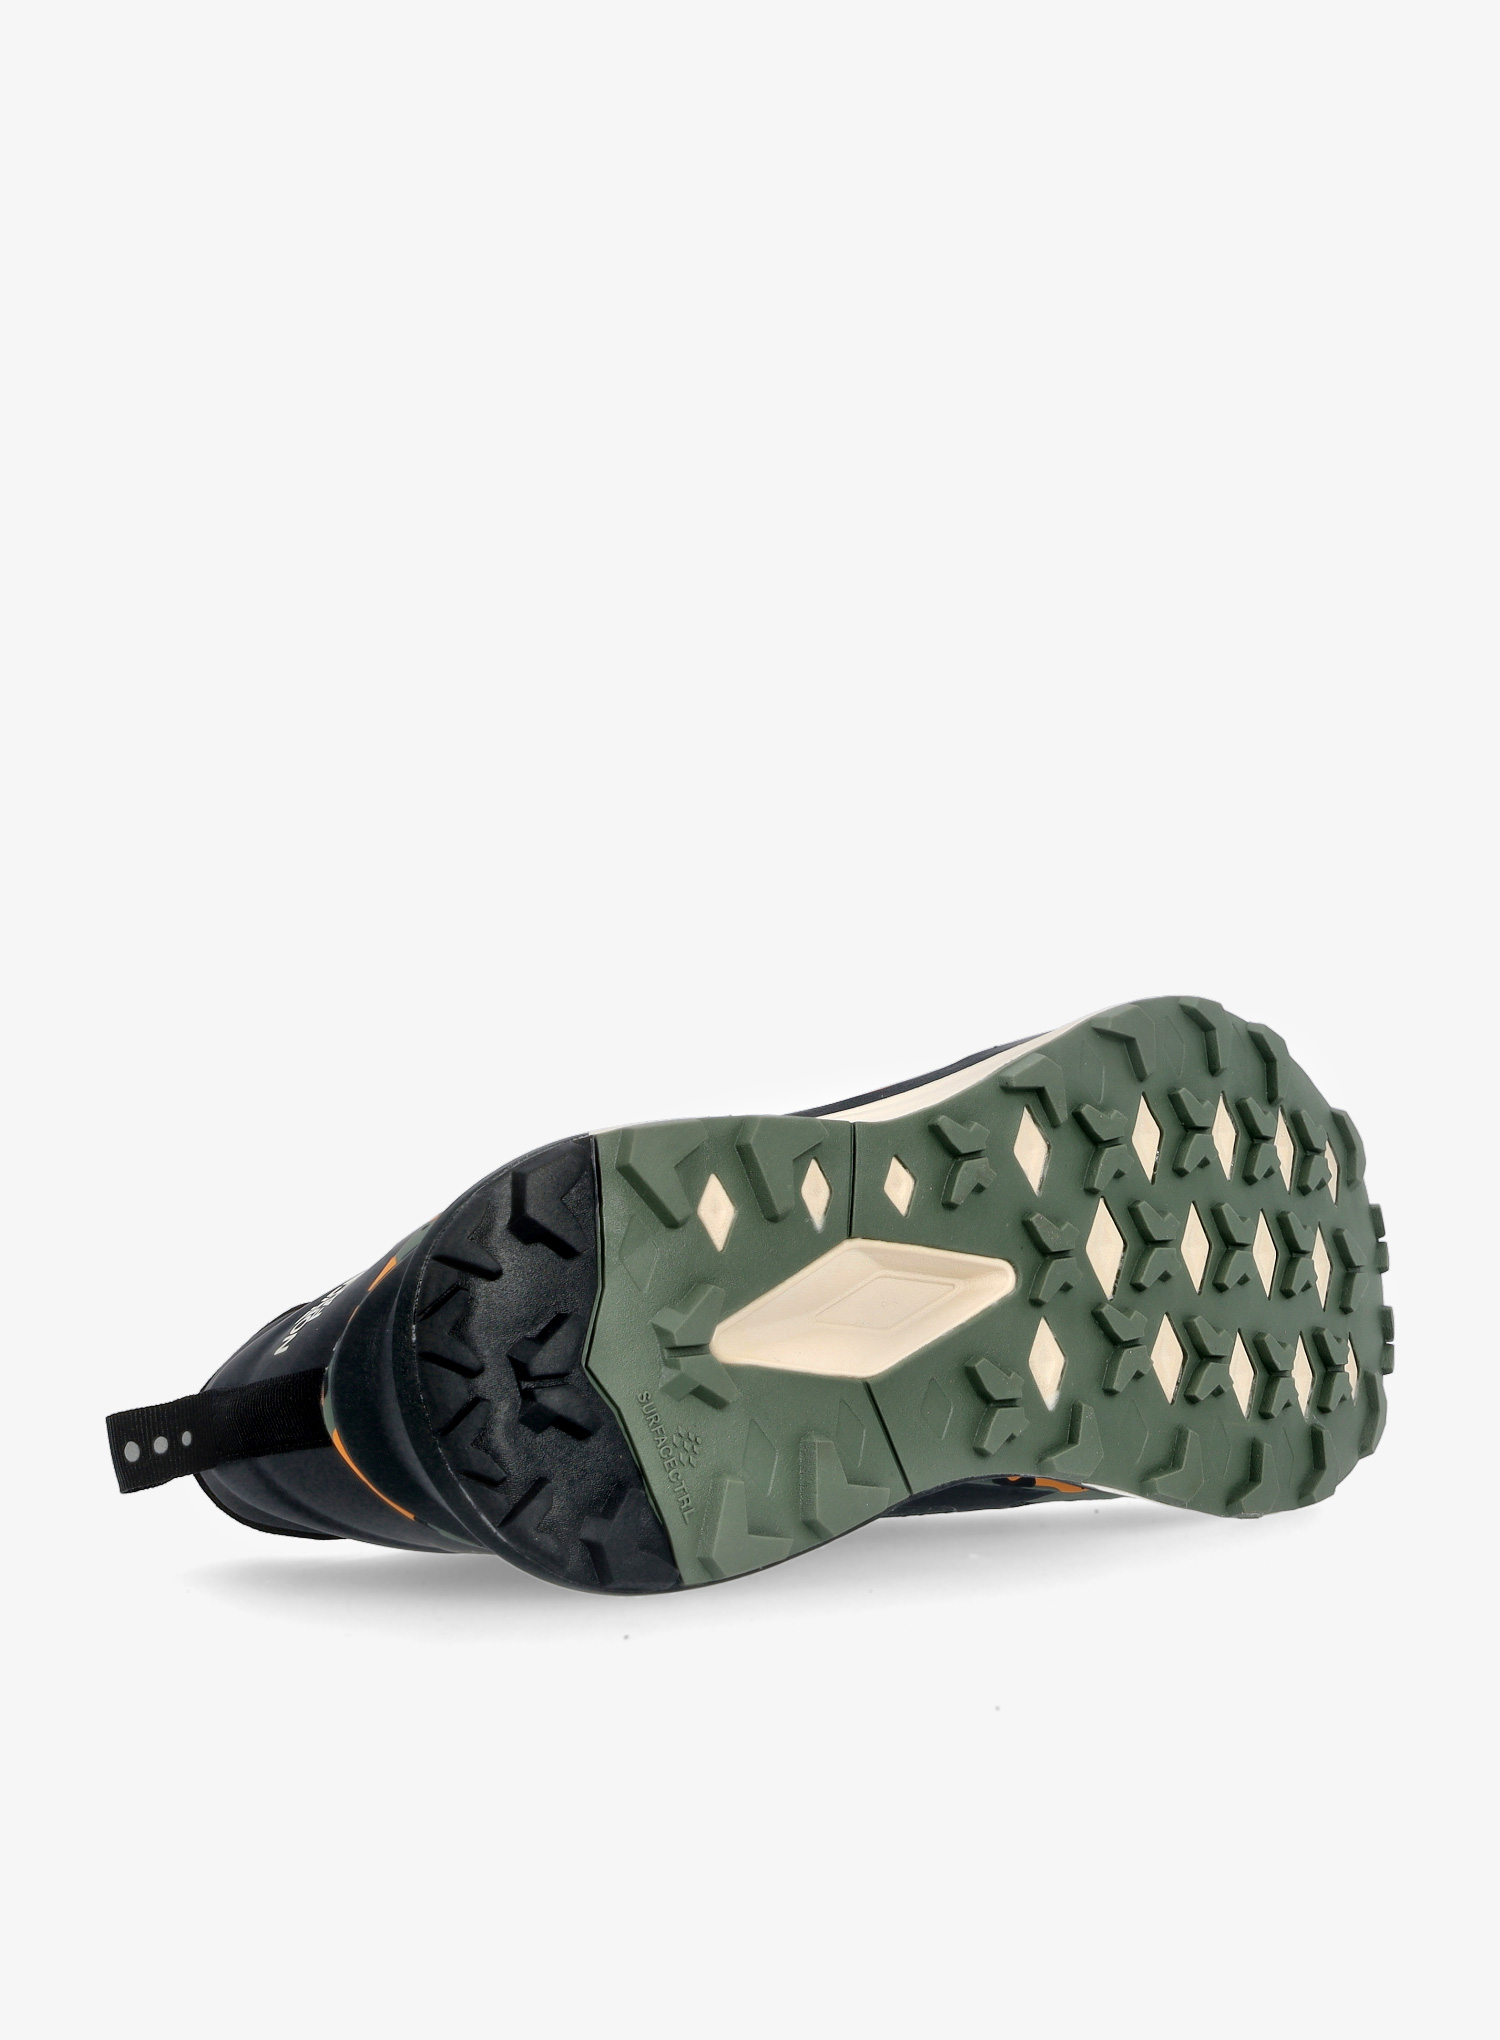 Buty trailowe The North Face Vectiv Infinite LTD - agave green/gold - zdjęcie nr. 4